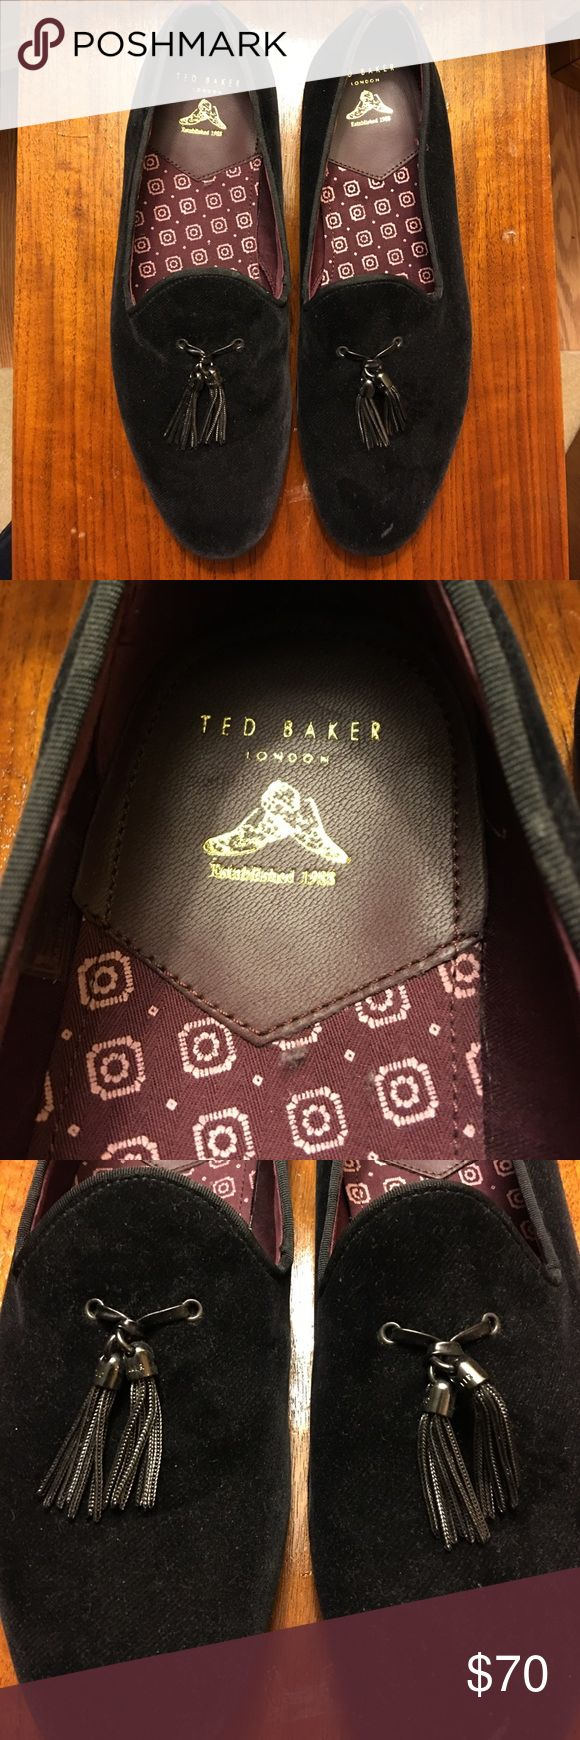 Never worn Ted Baker London velvet shoes /slippers Ted Baker London velvet shoes / slippers, Never worn Ted Baker London Shoes Loafers & Slip-Ons